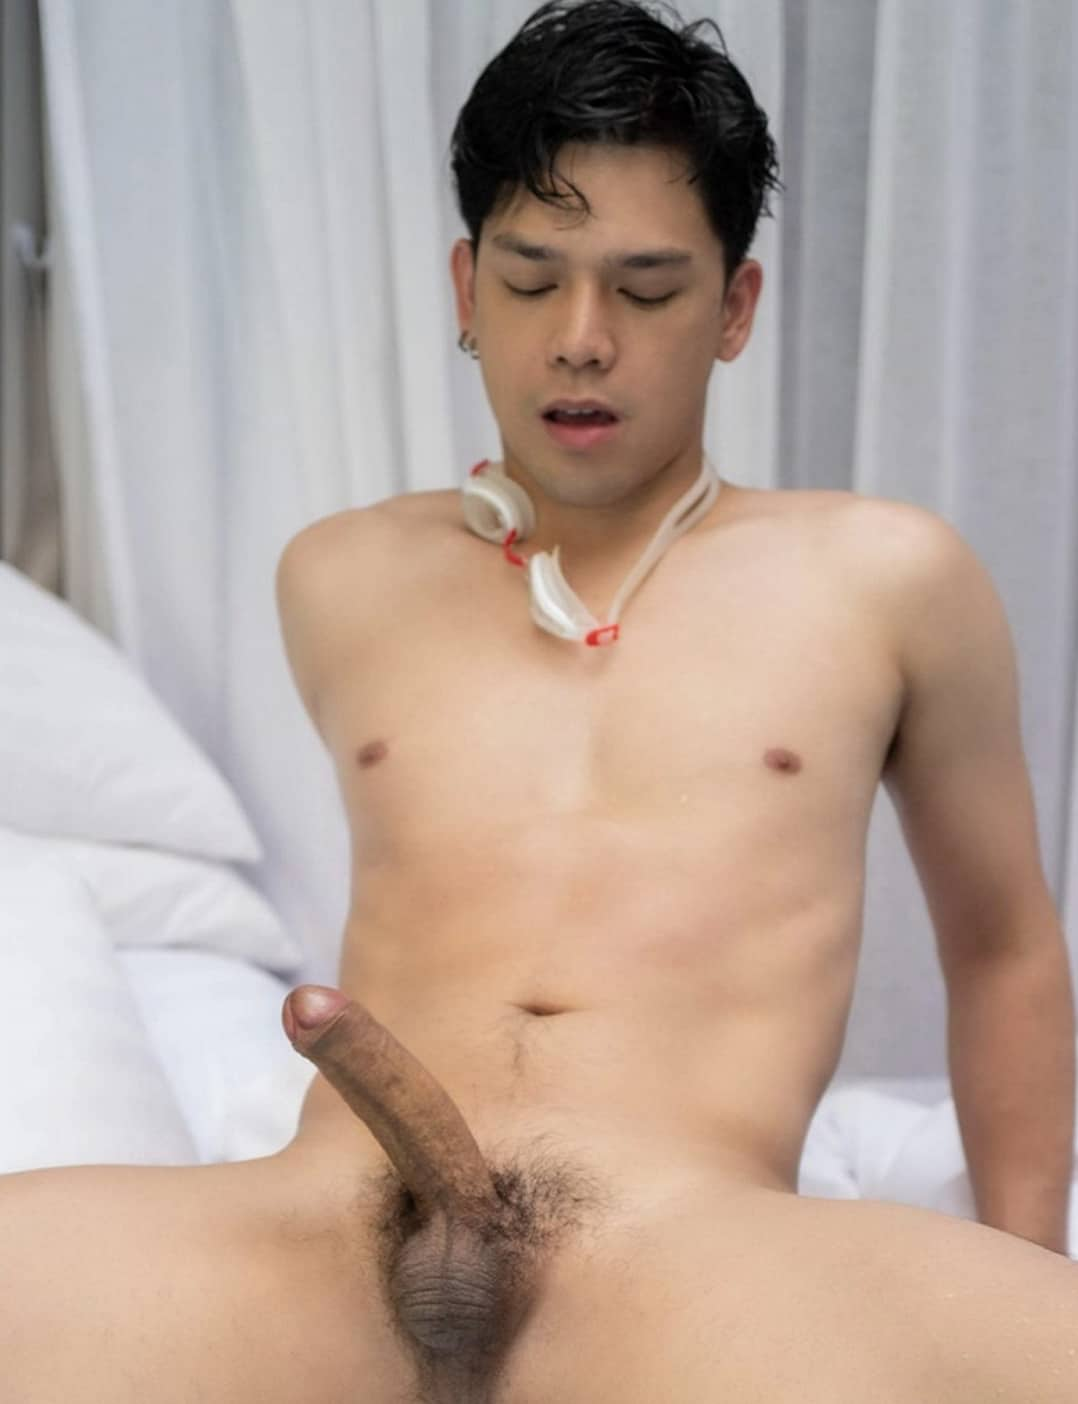 Hard cock with small balls